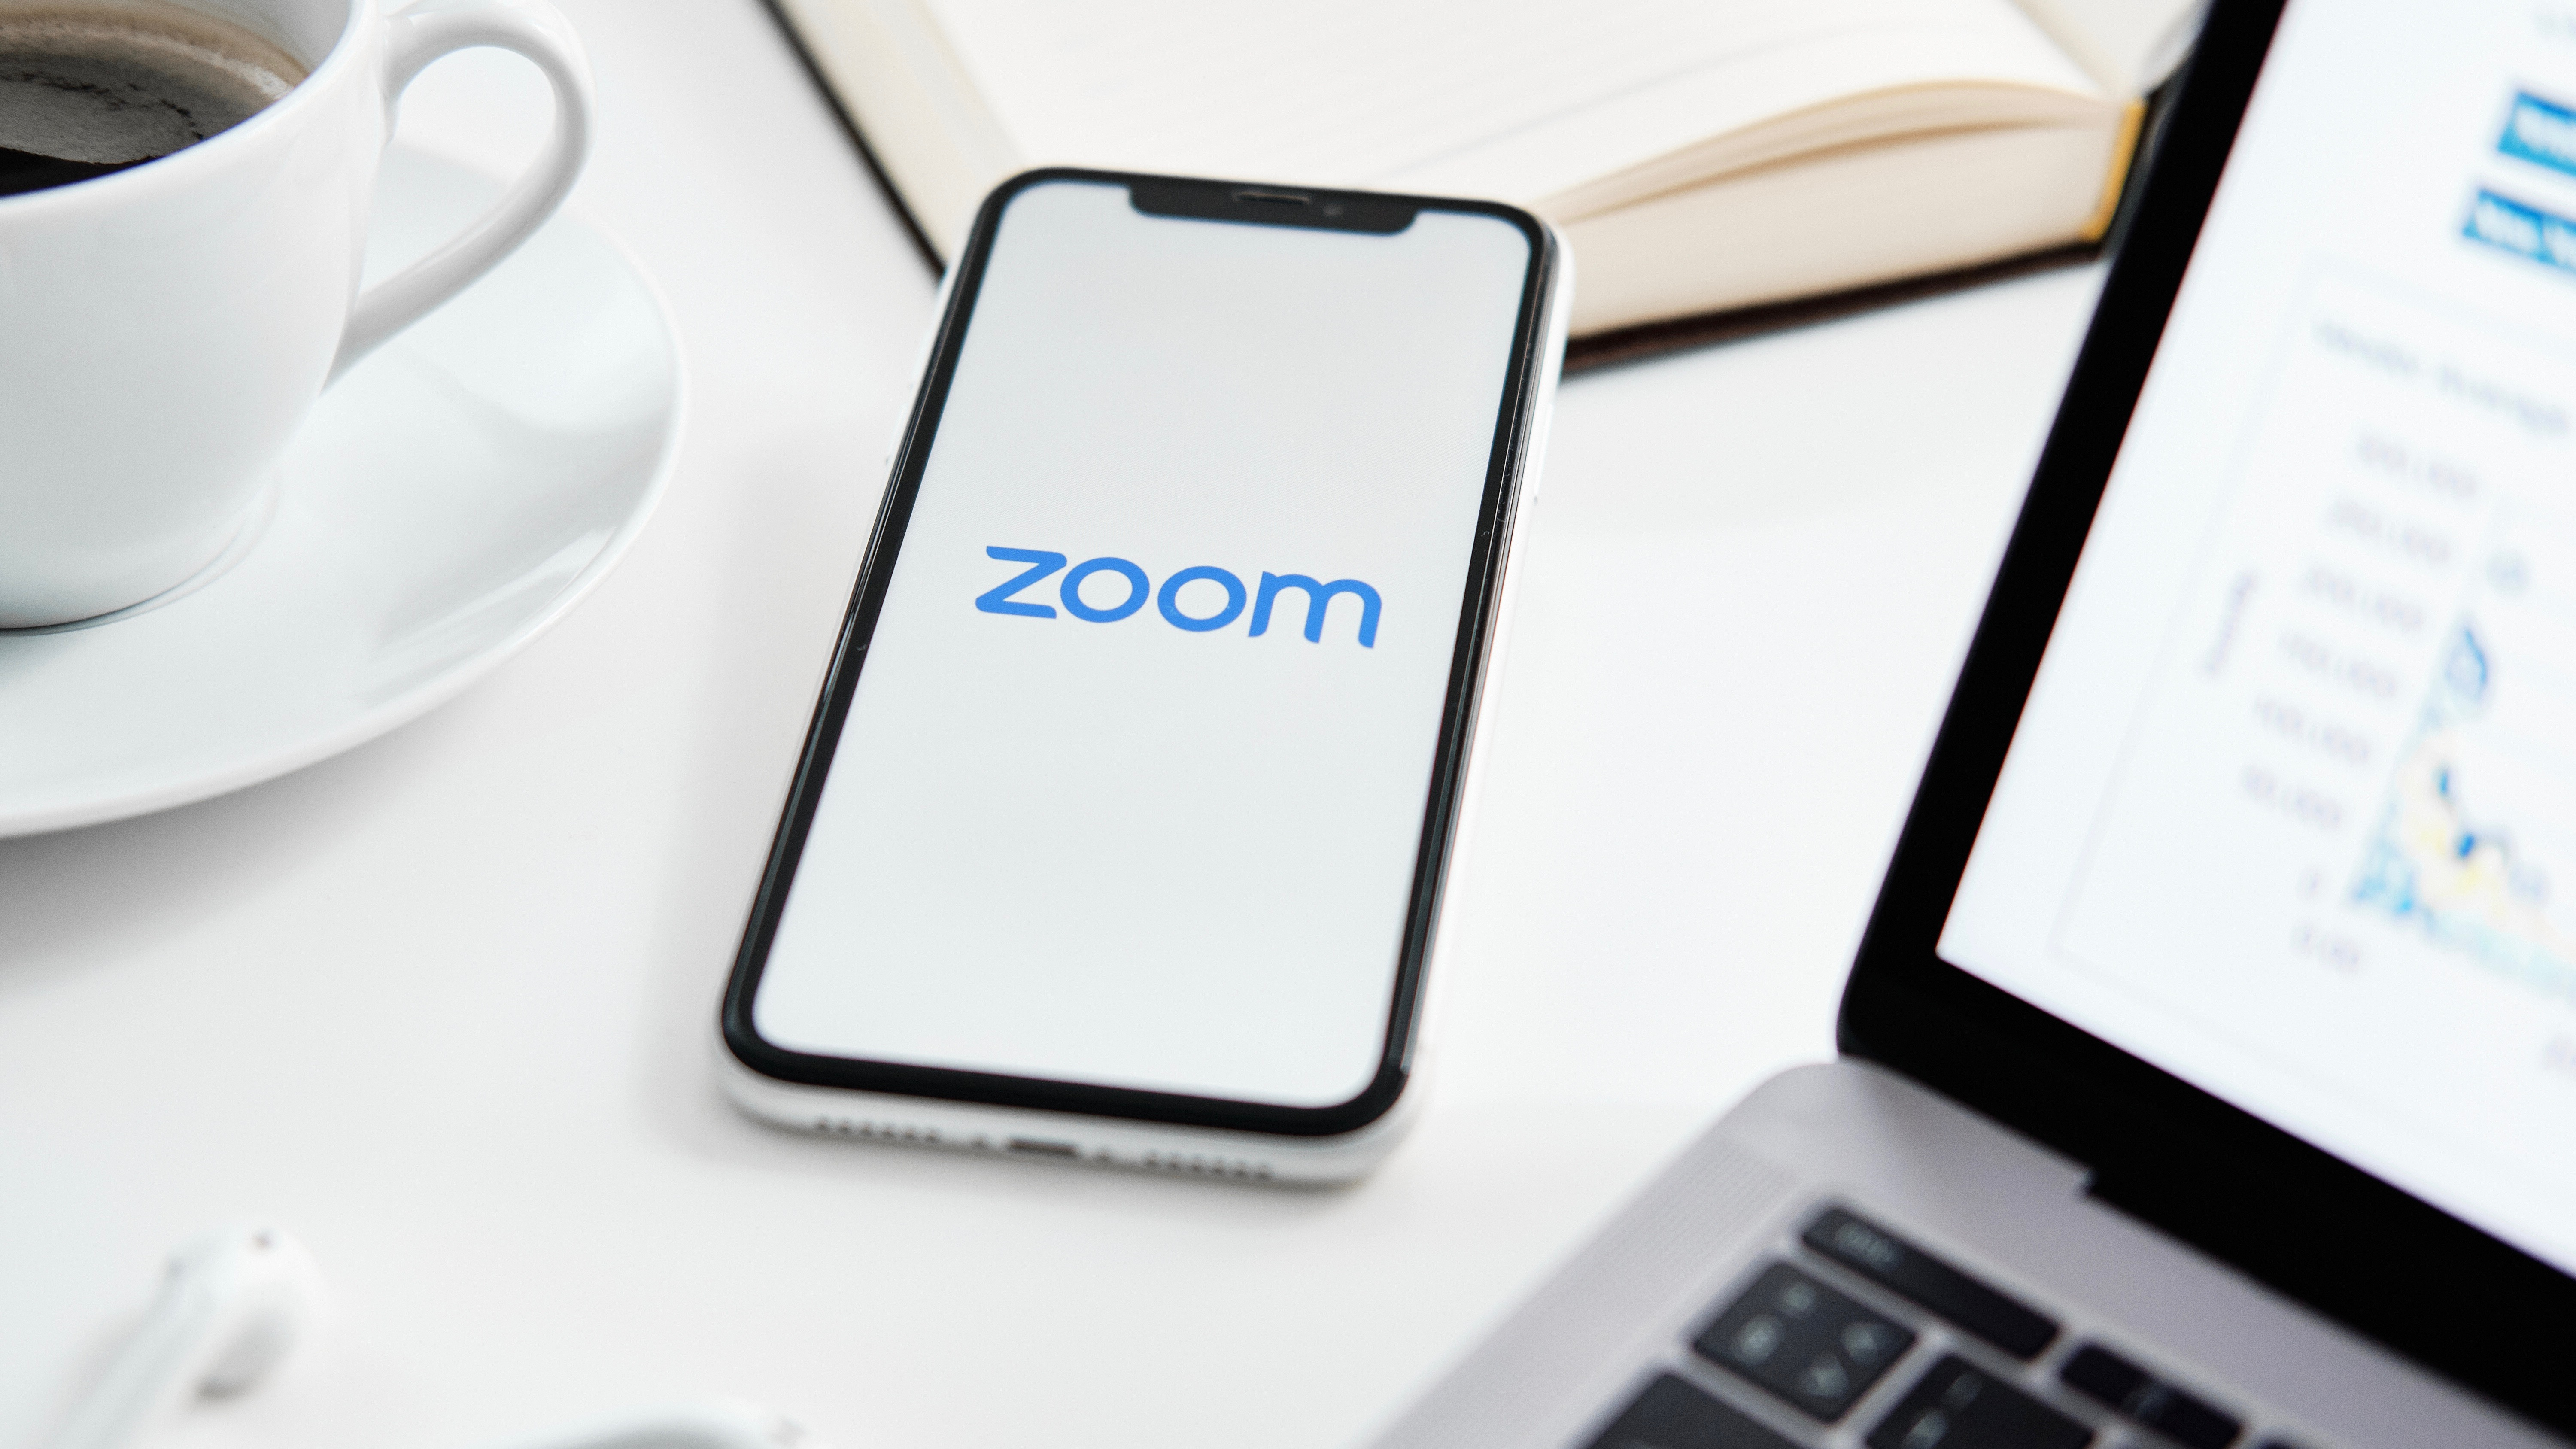 After backlash Zoom ditches snooping Facebook code from iOS app